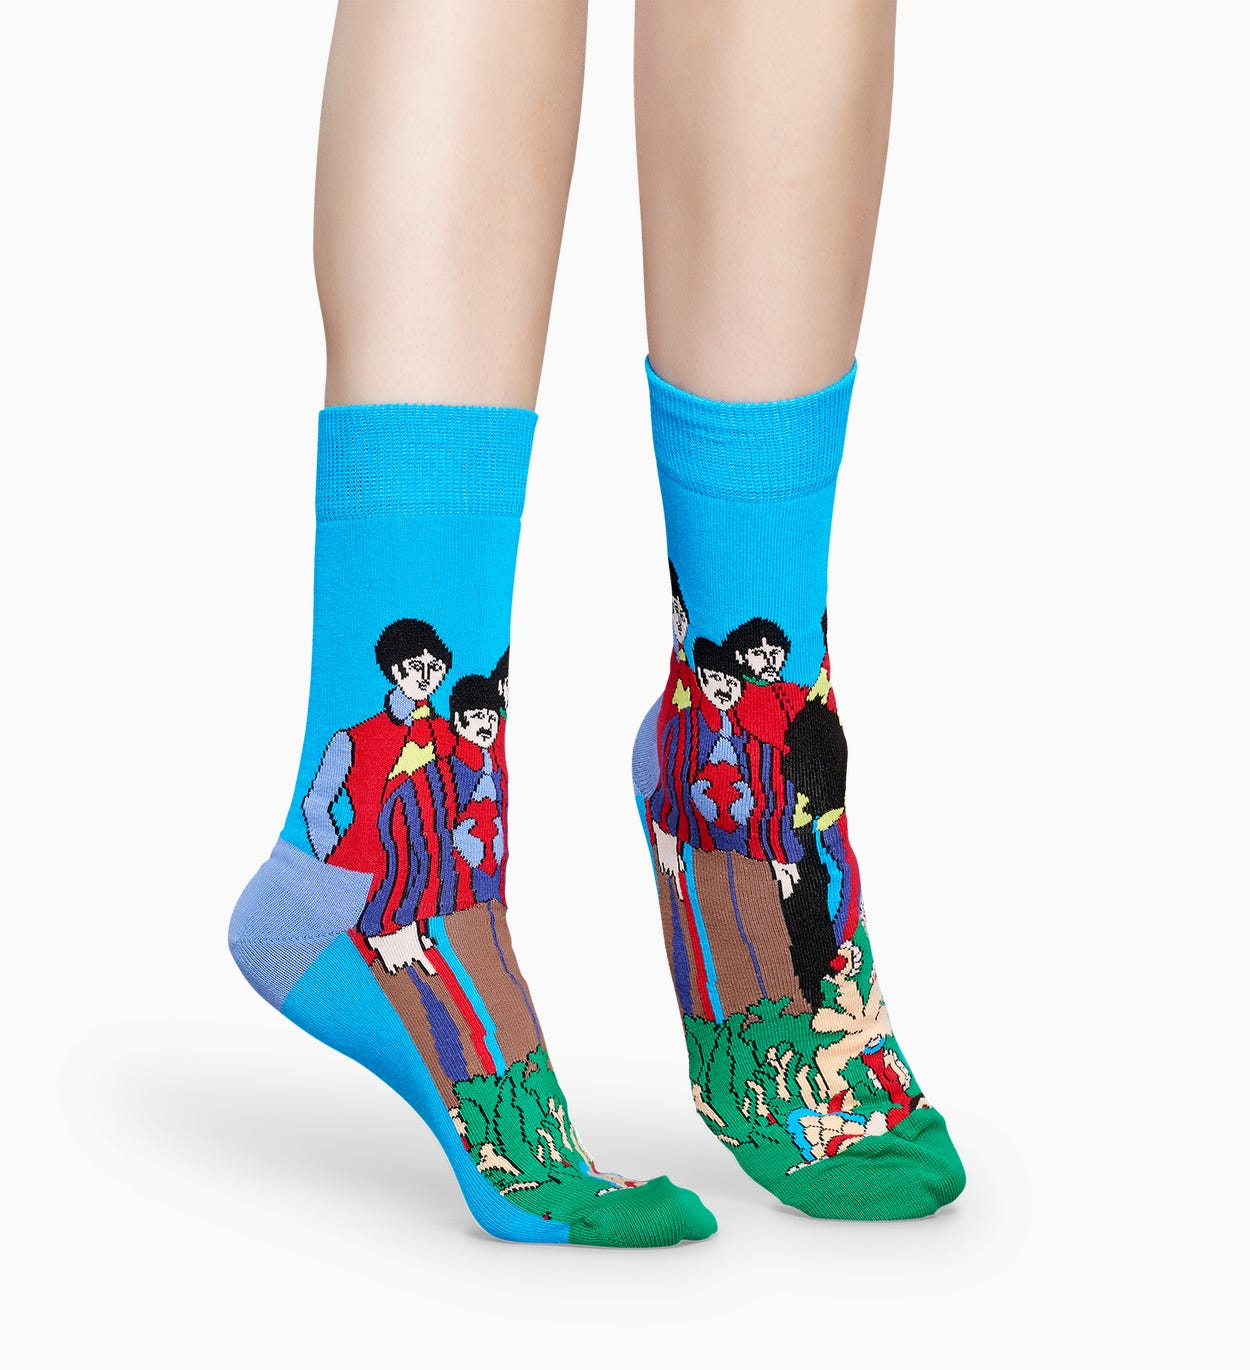 The Beatles Socken: Pepperland Design| Happy Socks